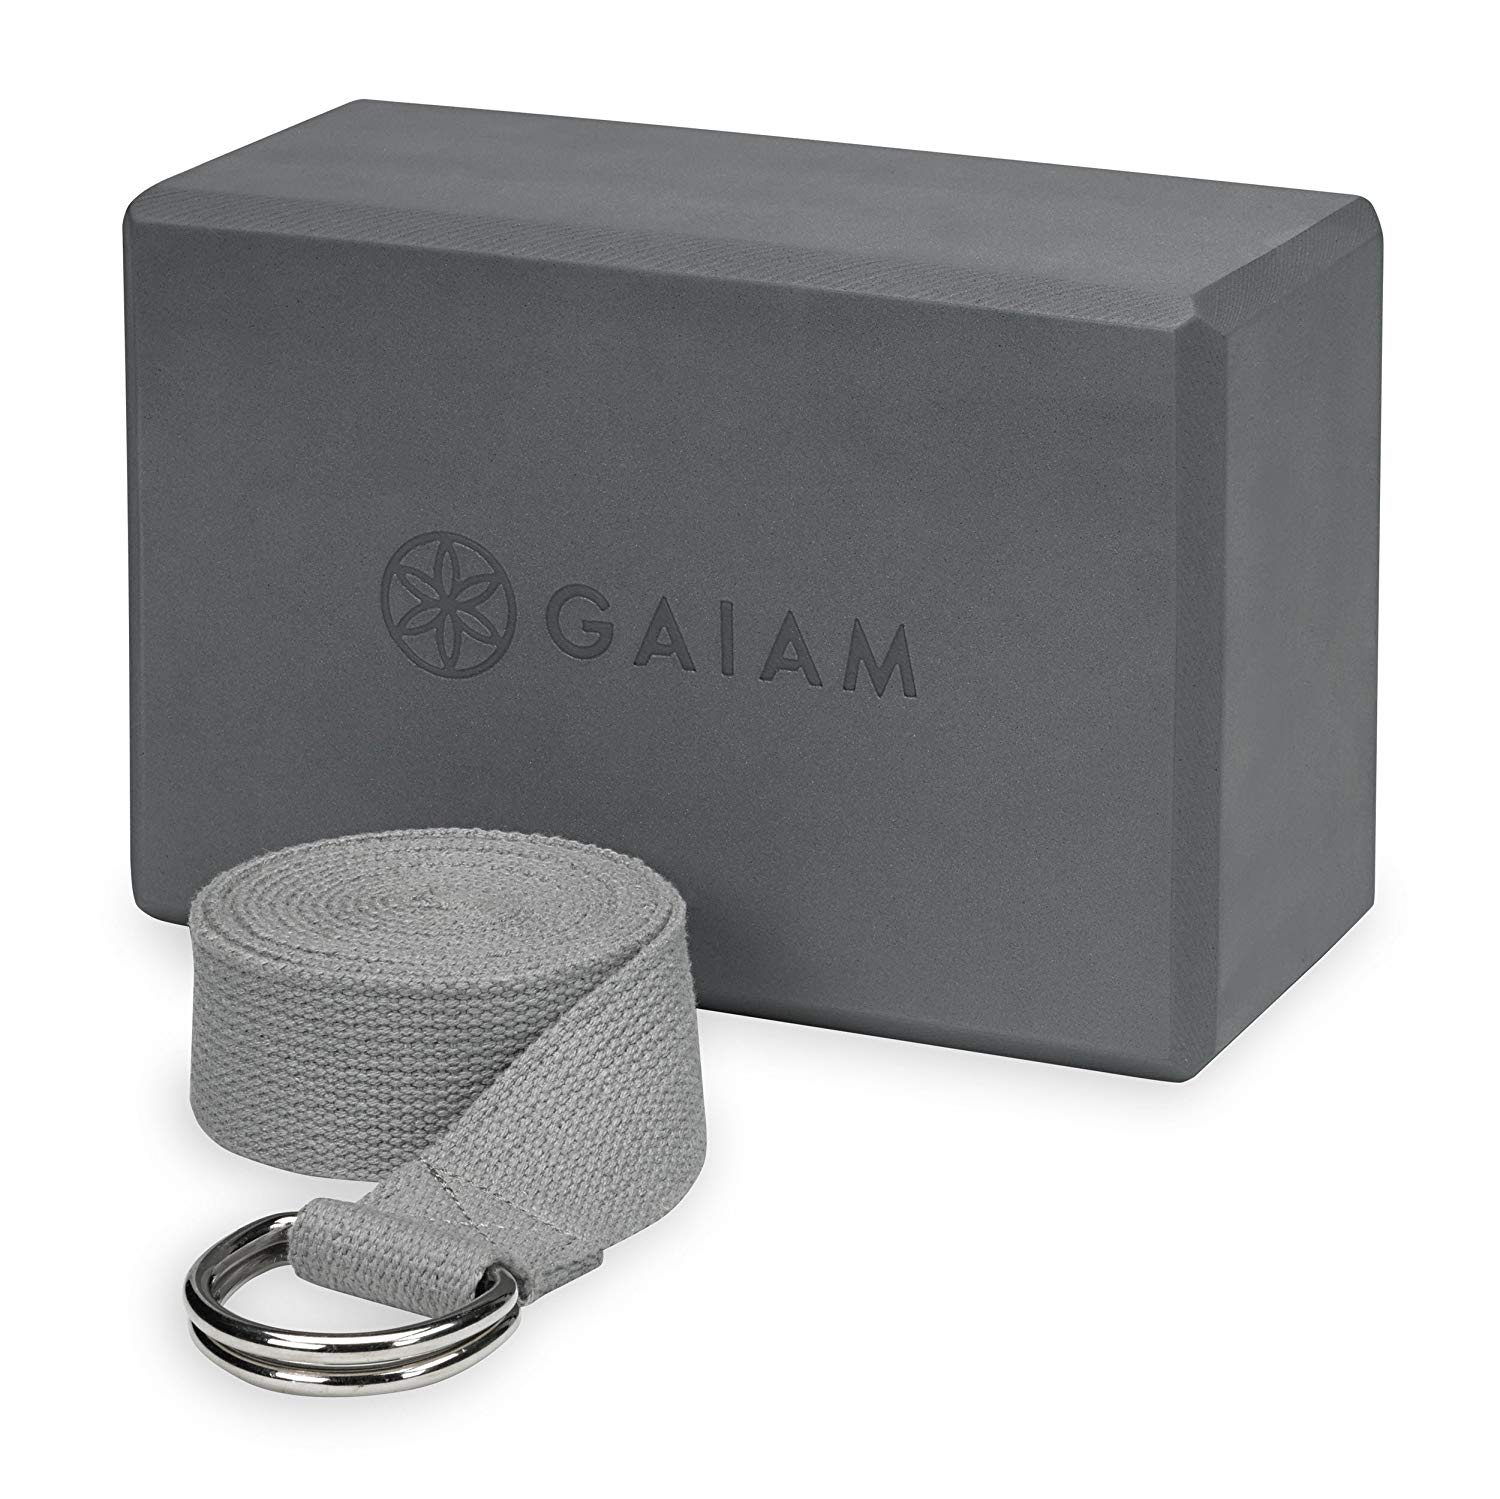 Gaiam Strap and block combo